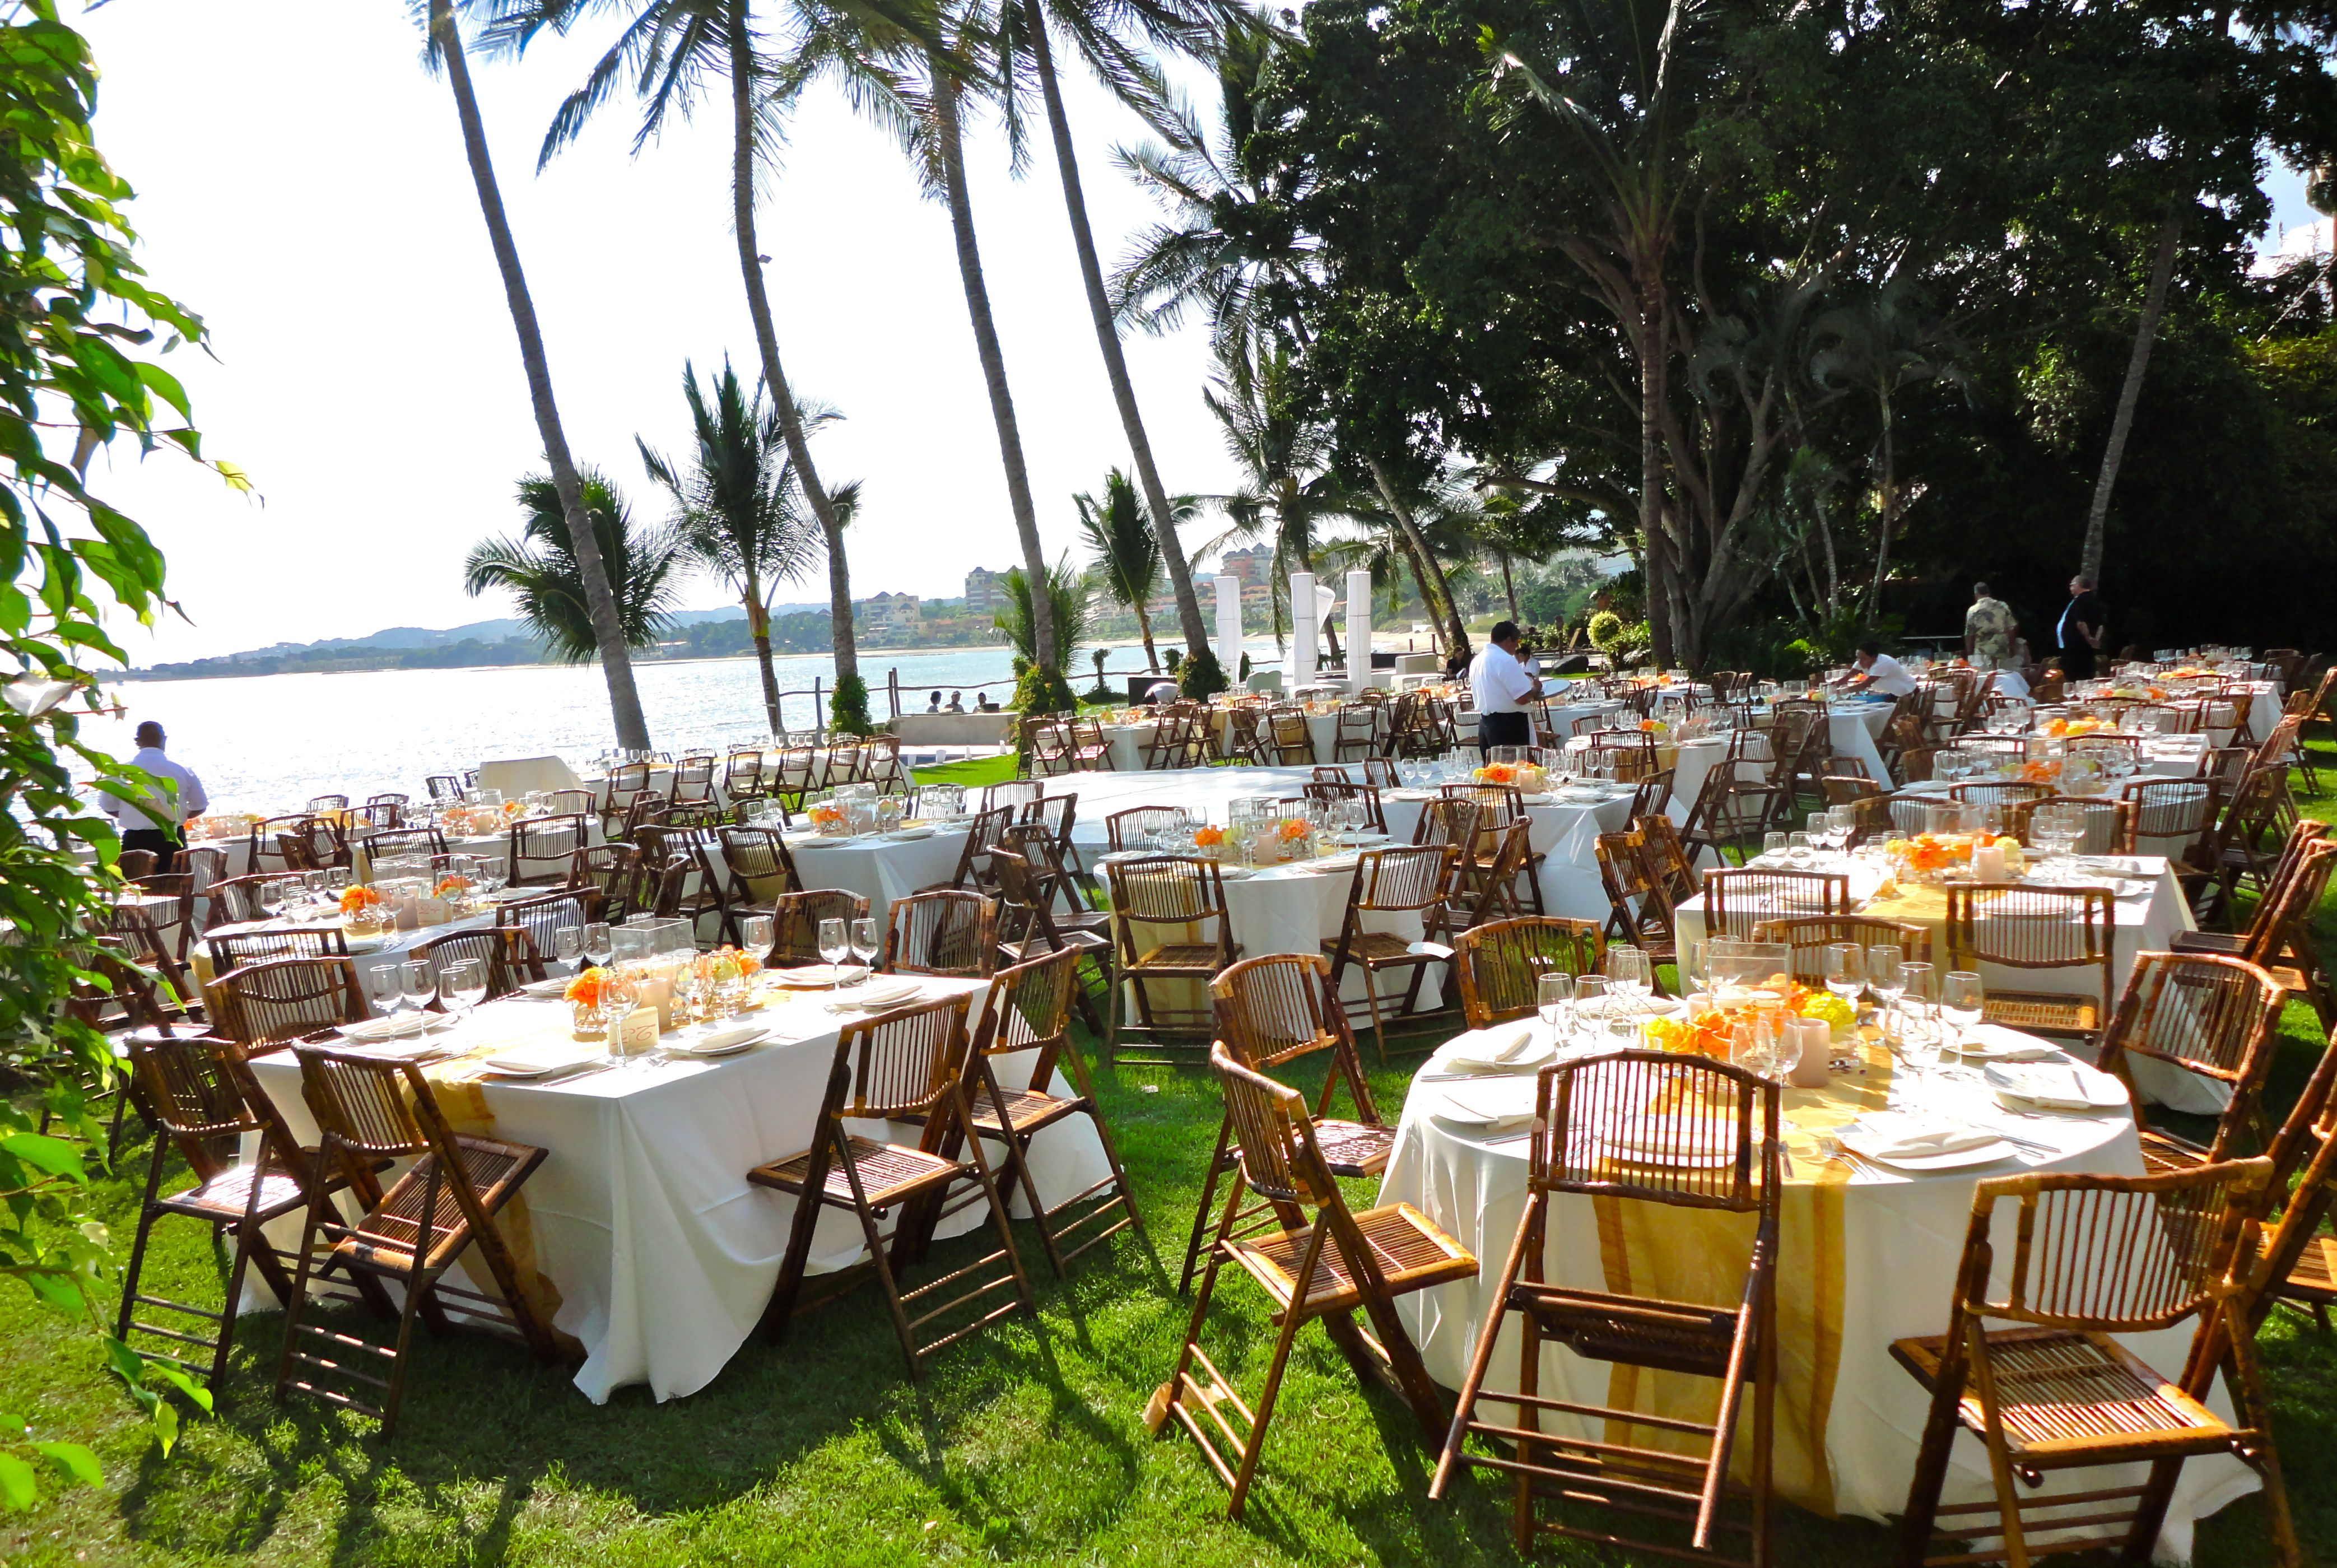 Bamboo wedding chairs - Find This Pin And More On Puerto Vallarta Wedding Venue Mexican Chic Fiesta Bamboo Chairs